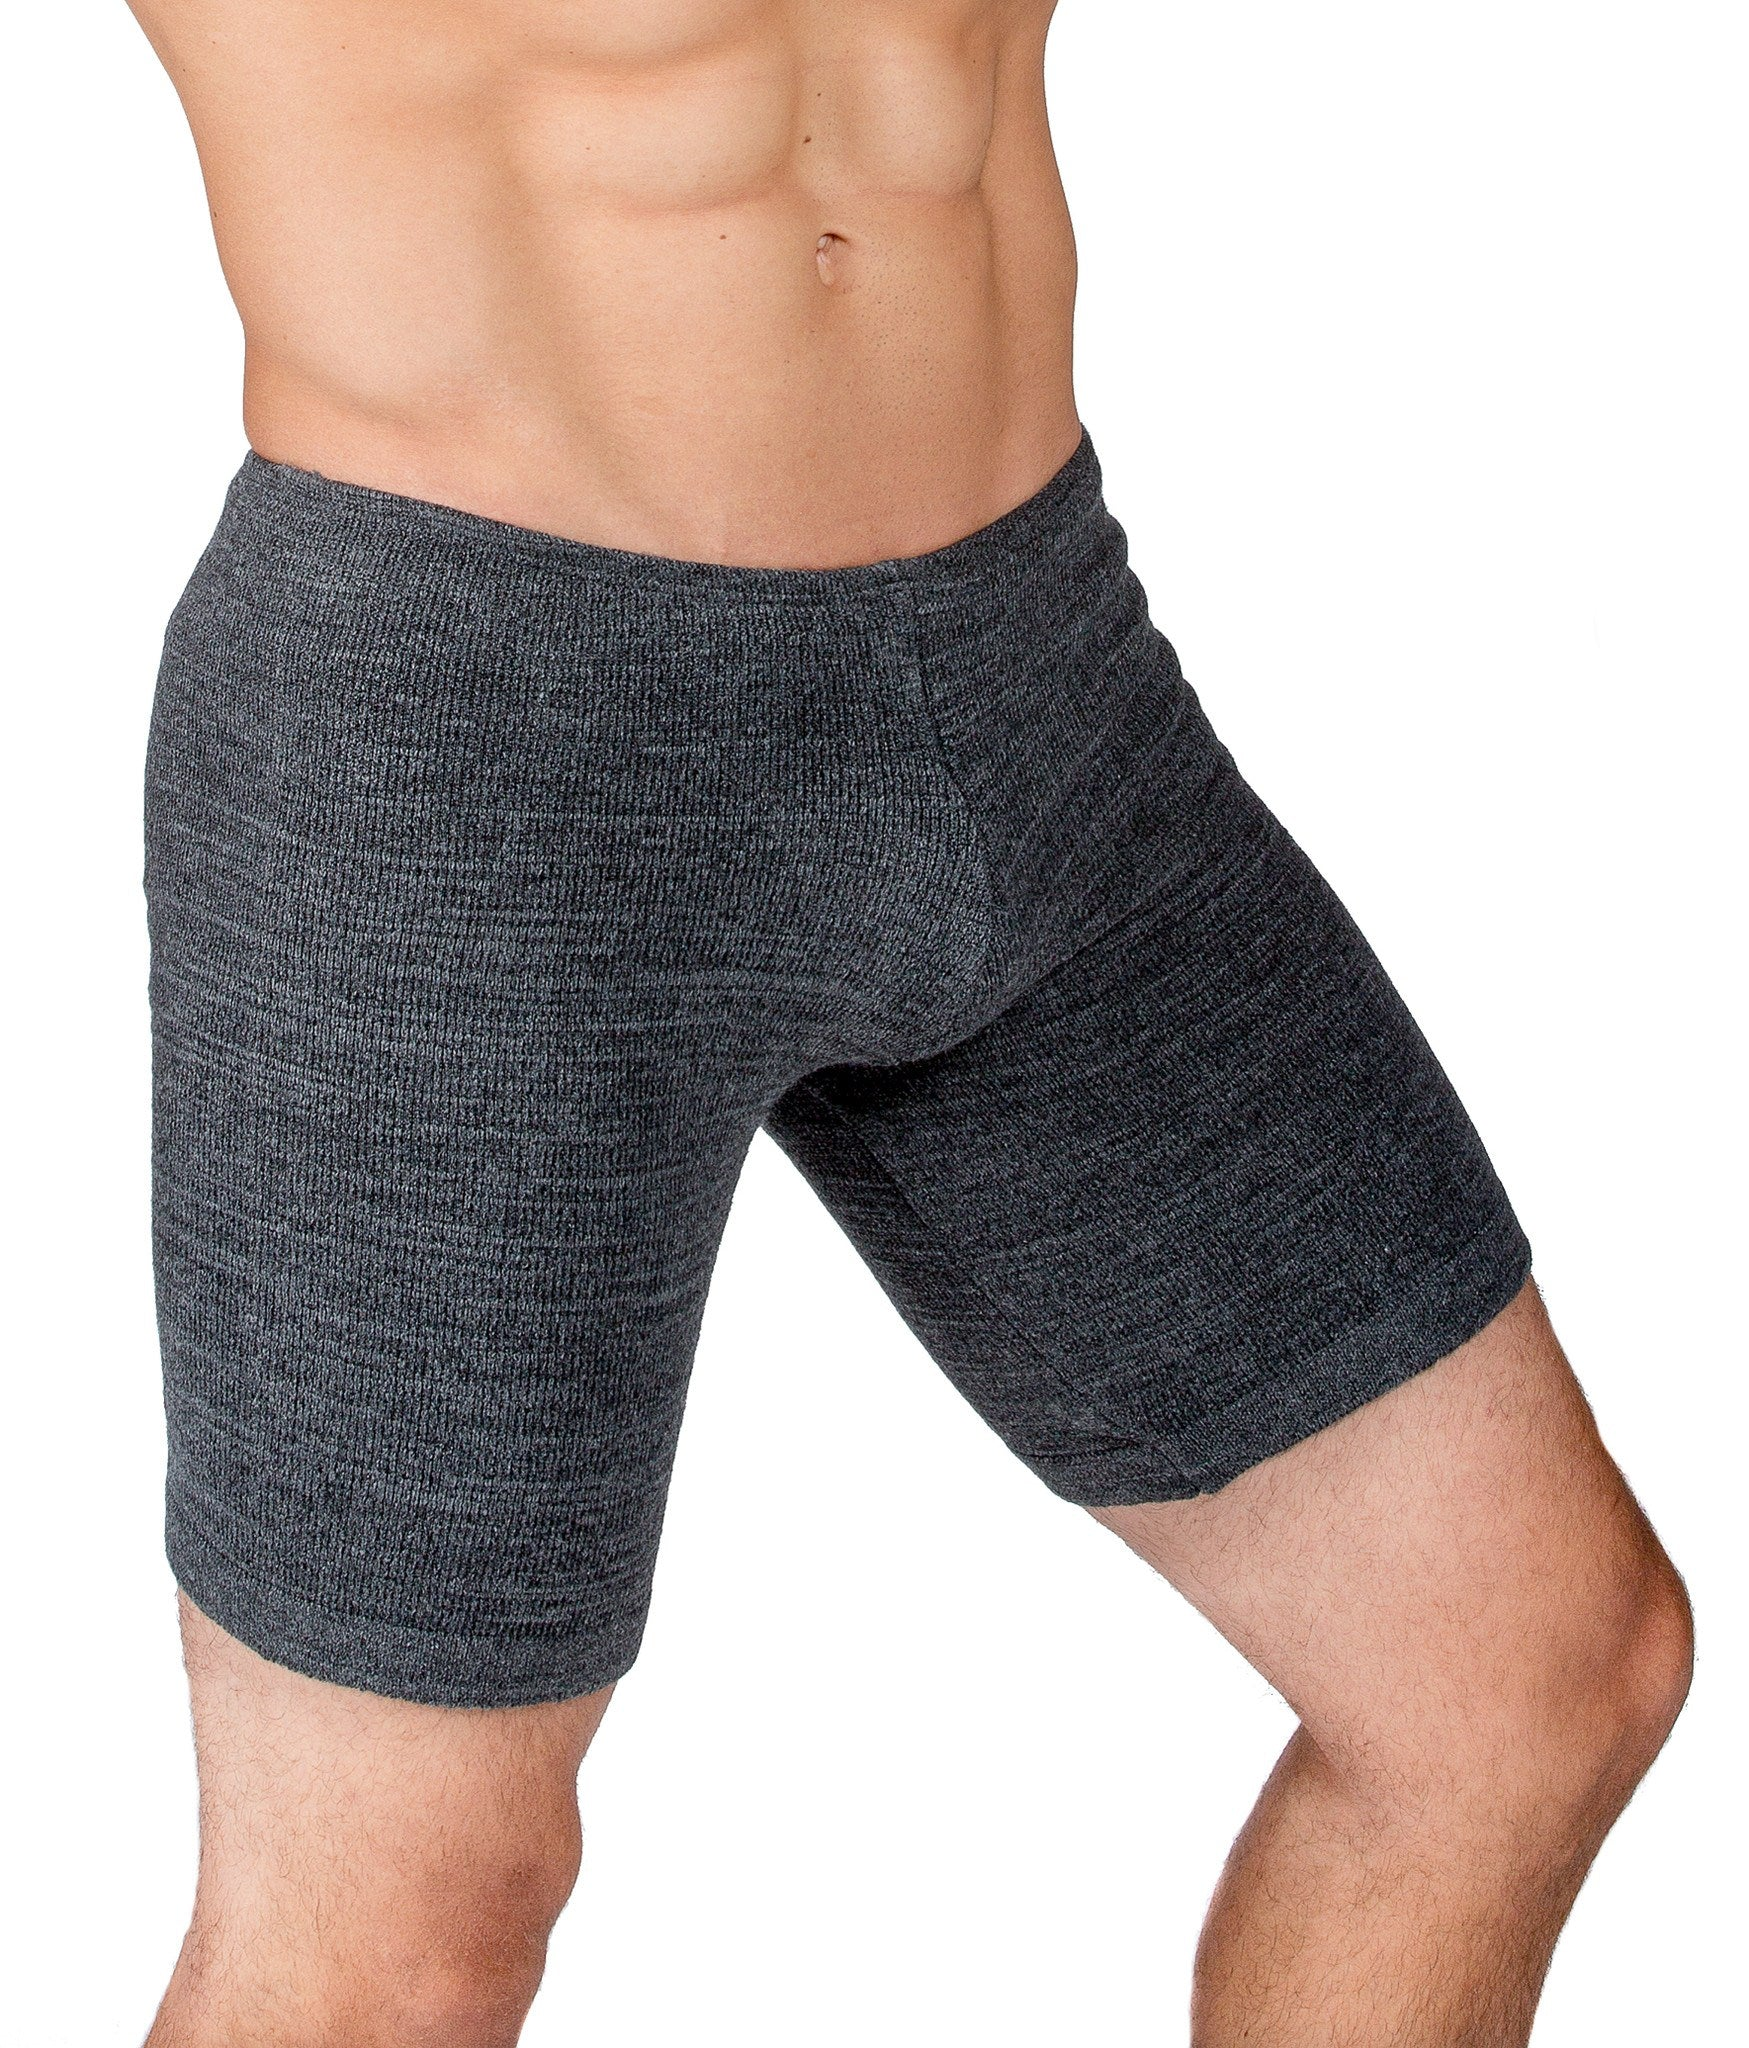 Shorts:  Men's Dance & Yoga Low Rise Shorts Stretch Knit Yoga KD dance NYC Dancewear Made In USA @KDdanceNewYork #MadeInUSA - 7